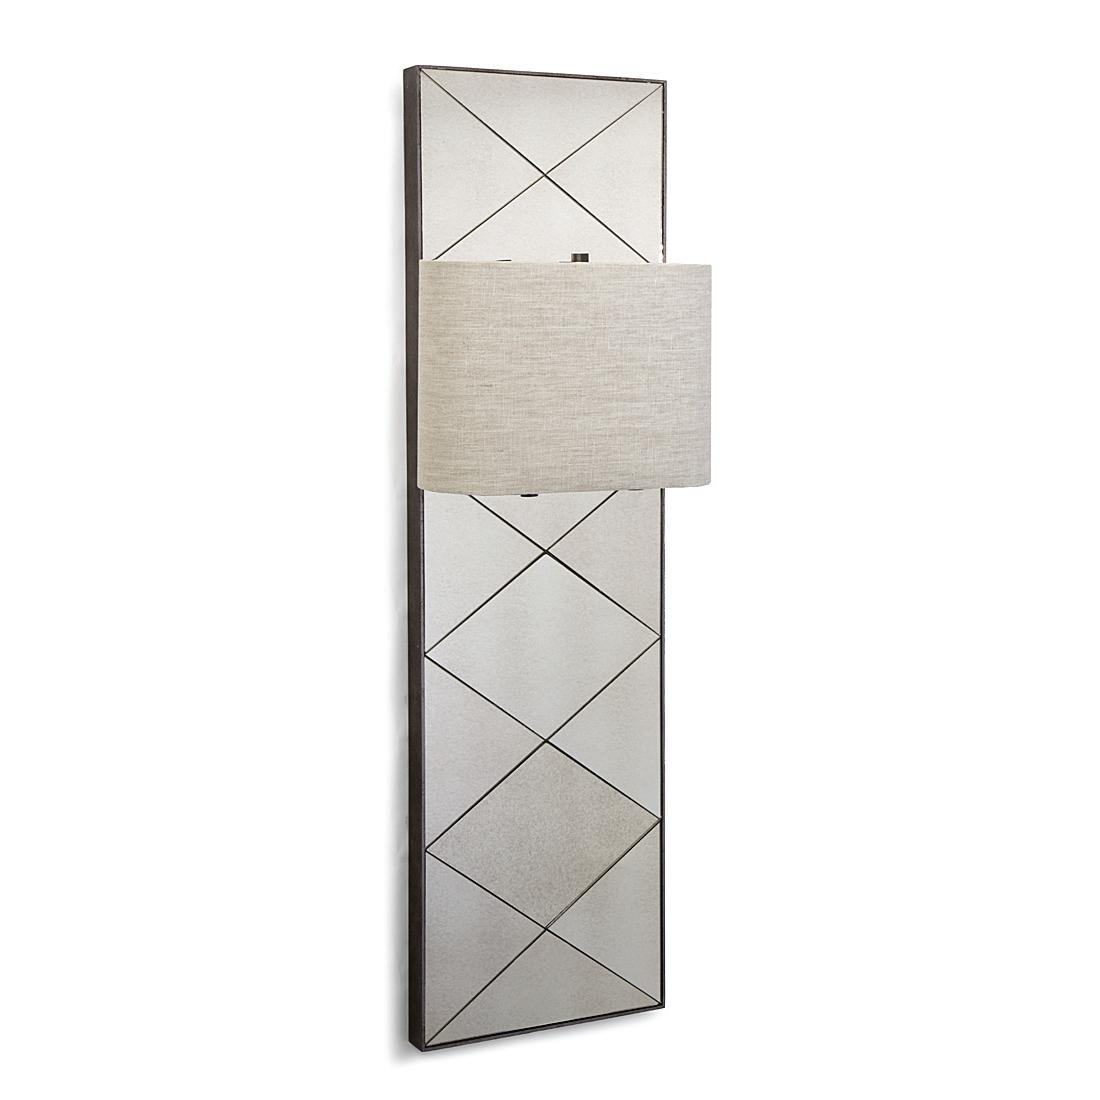 Regina andrew lighting - Regina Andrew Lighting Parisian Tall Panel Sconce